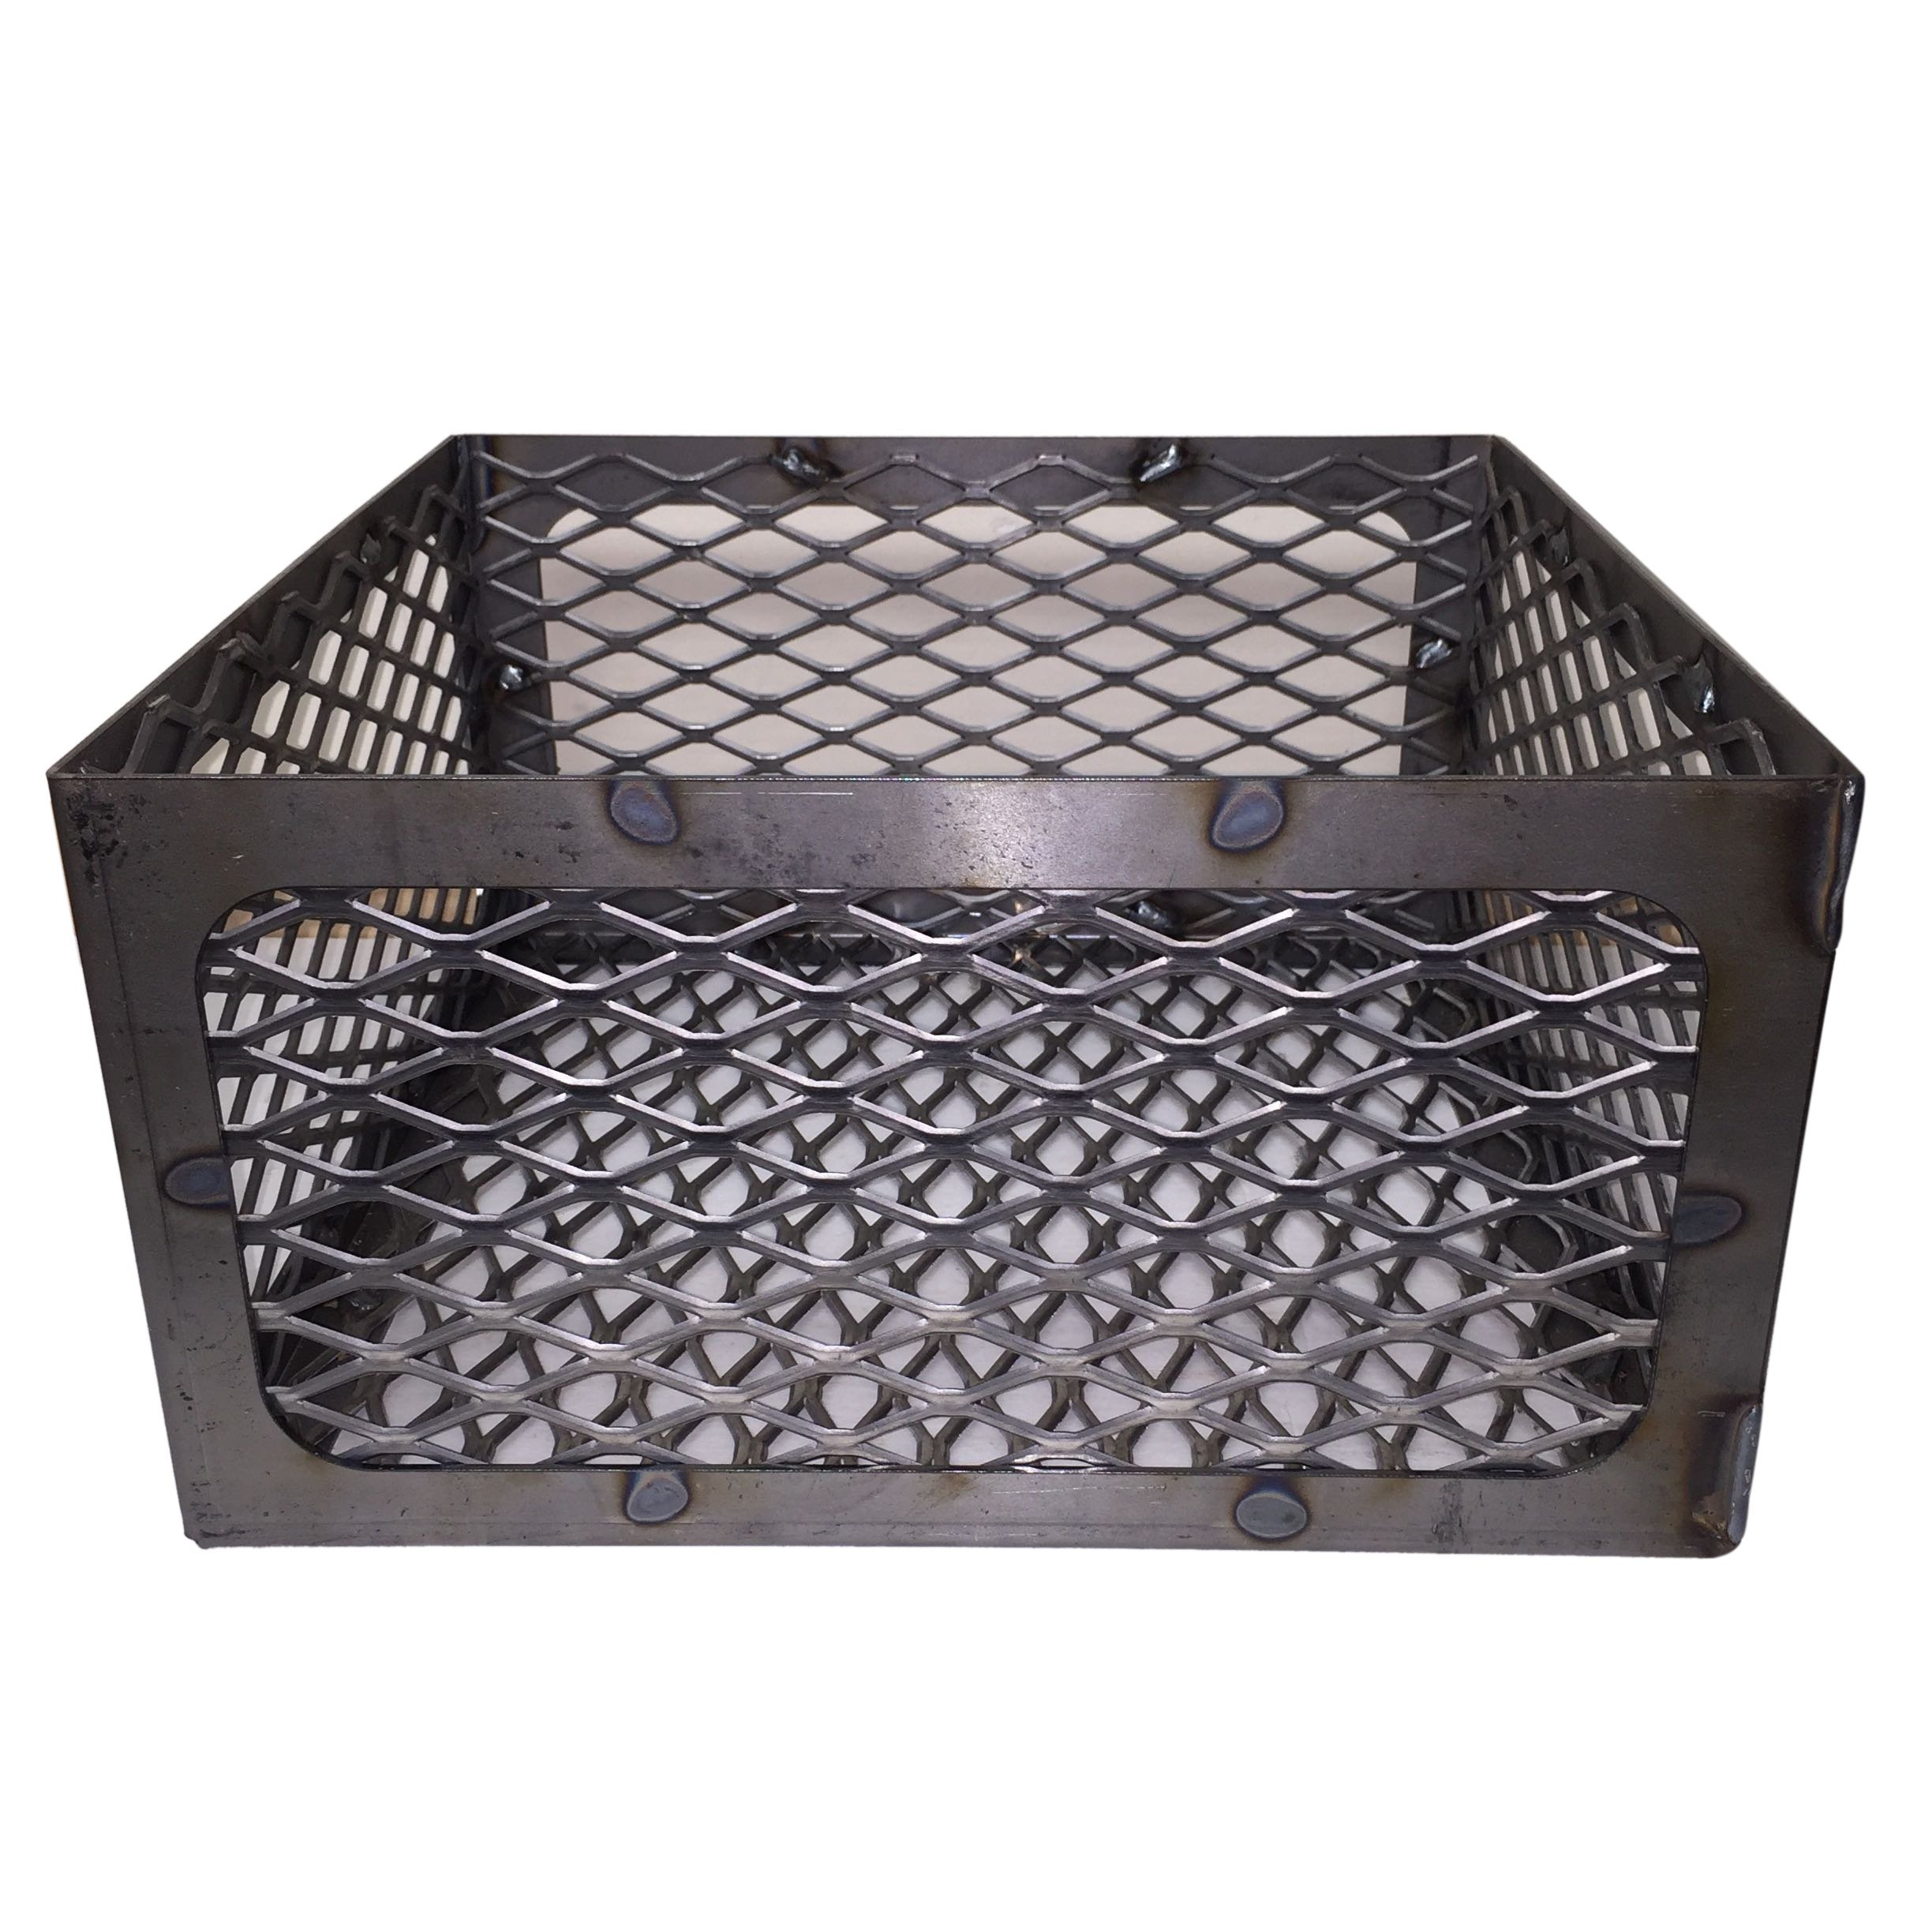 LavaLock® Total Control BBQ Charcoal Basket Smoker Pit (fire Box) 15 x 15 x 8 Horizon New Braunfel Old Country by LavaLock® (Image #1)